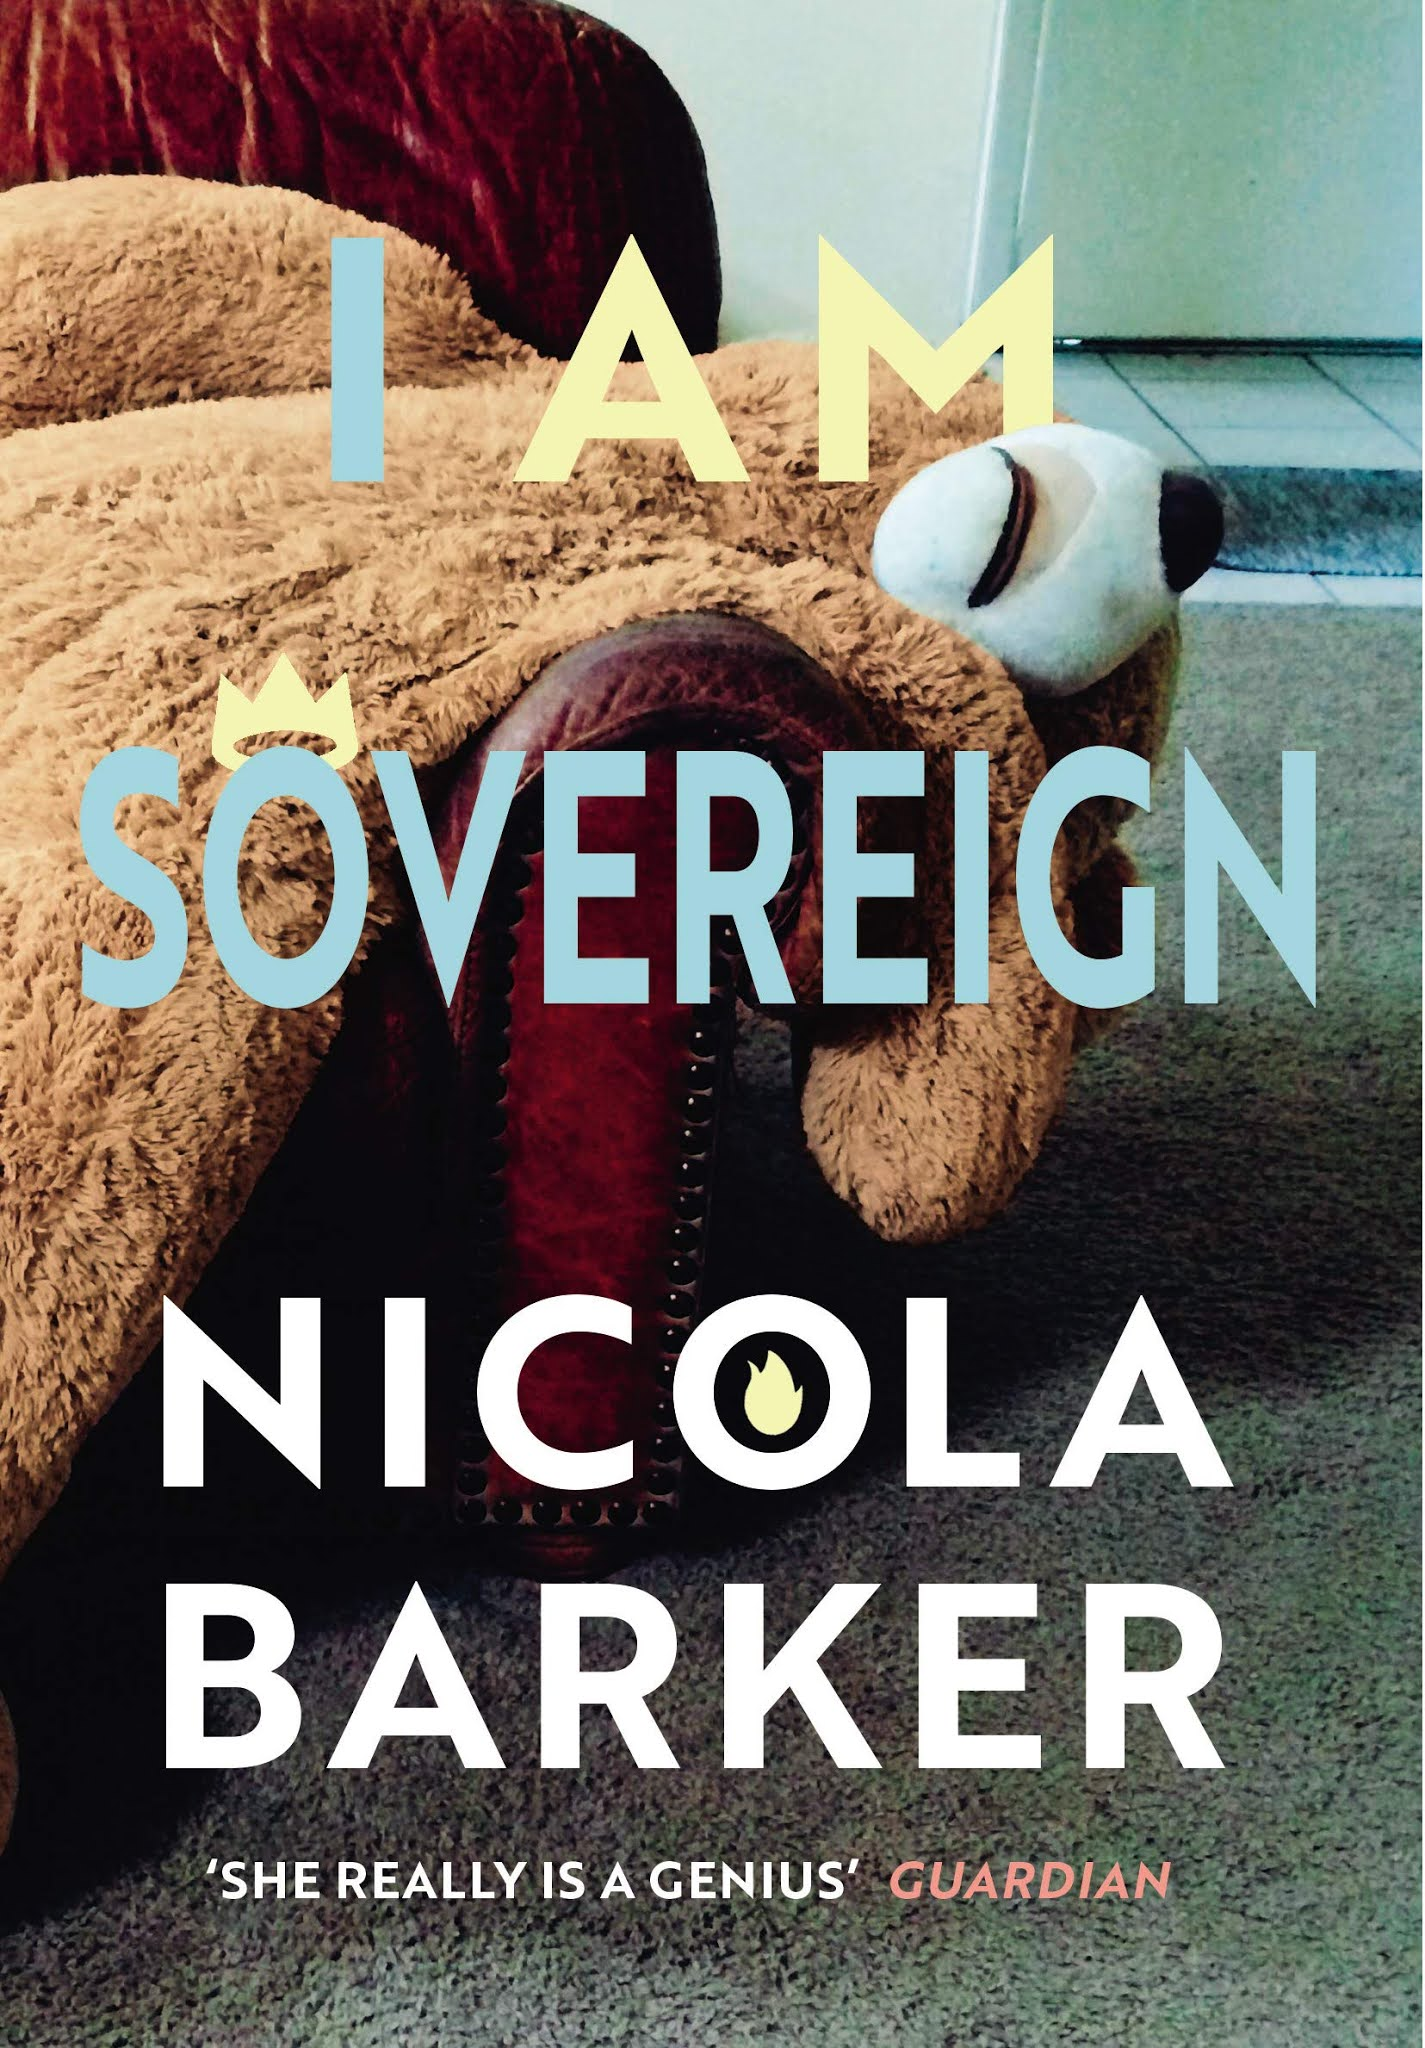 Book cover for I am Soverign by Nicola Barker I am Soverign in the South Manchester, Chorlton, Cheadle, Fallowfield, Burnage, Levenshulme, Heaton Moor, Heaton Mersey, Heaton Norris, Heaton Chapel, Northenden, and Didsbury book group